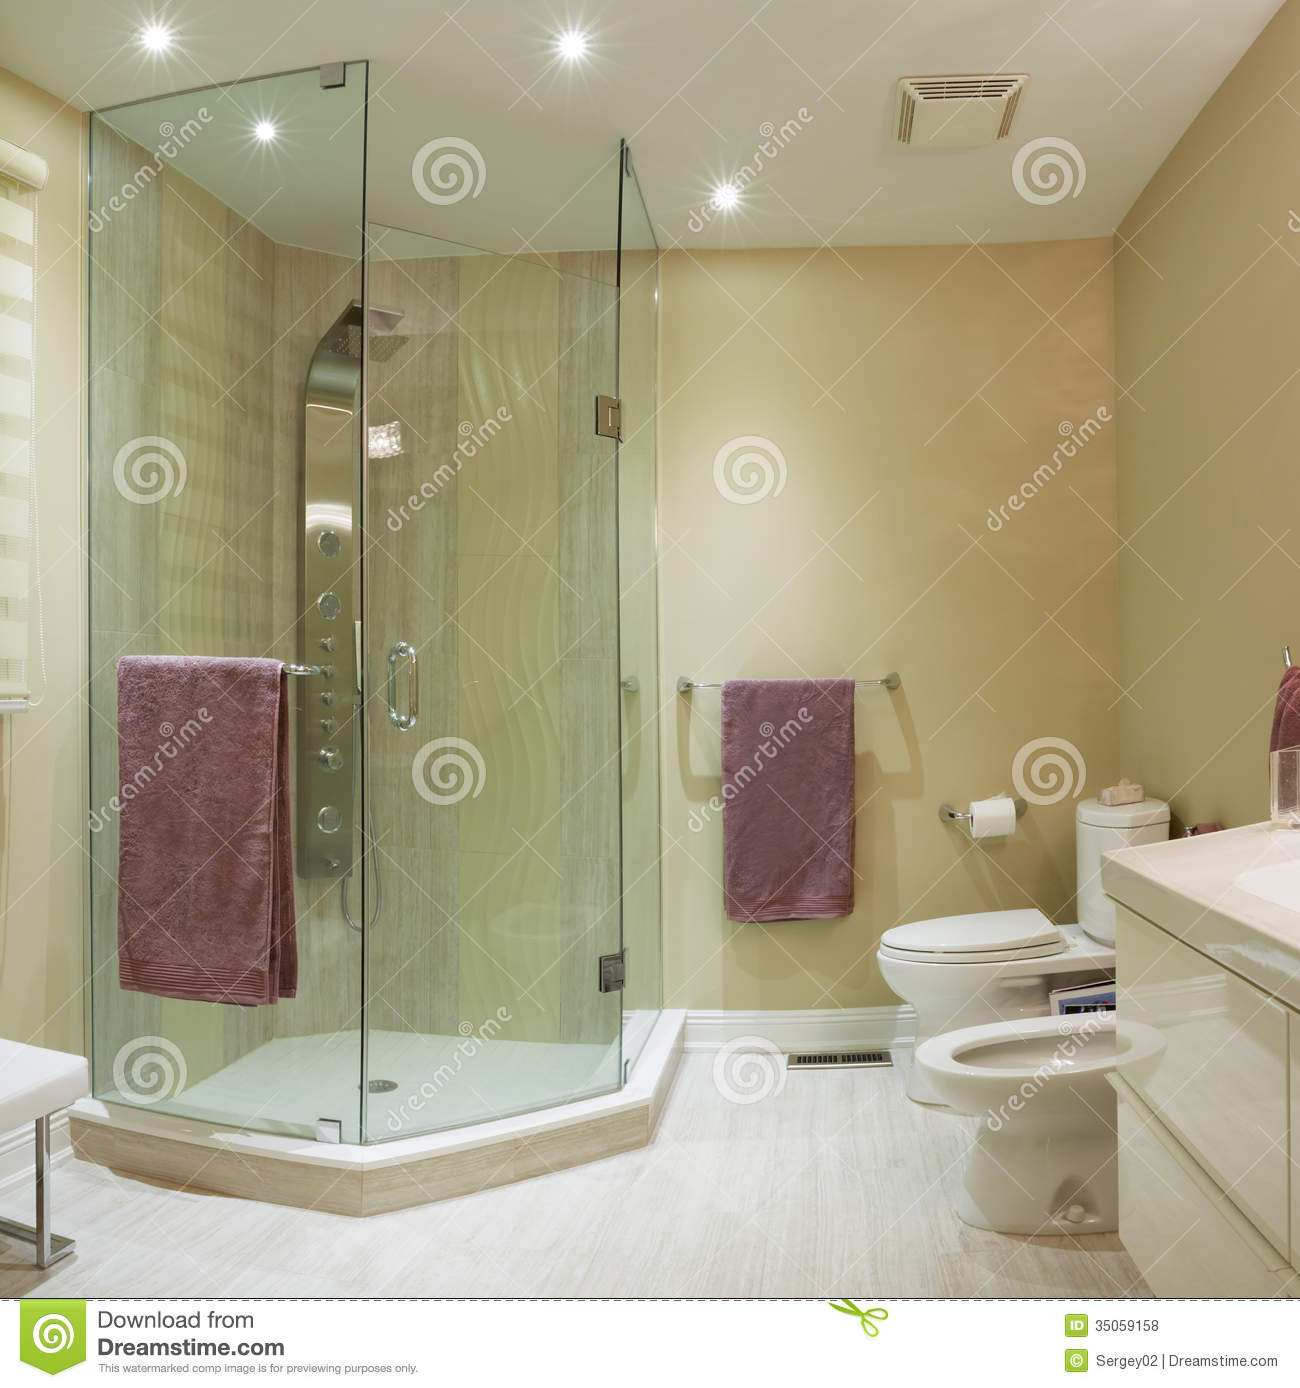 Interior design royalty free stock photos image 35059158 for Interior design bathroom images